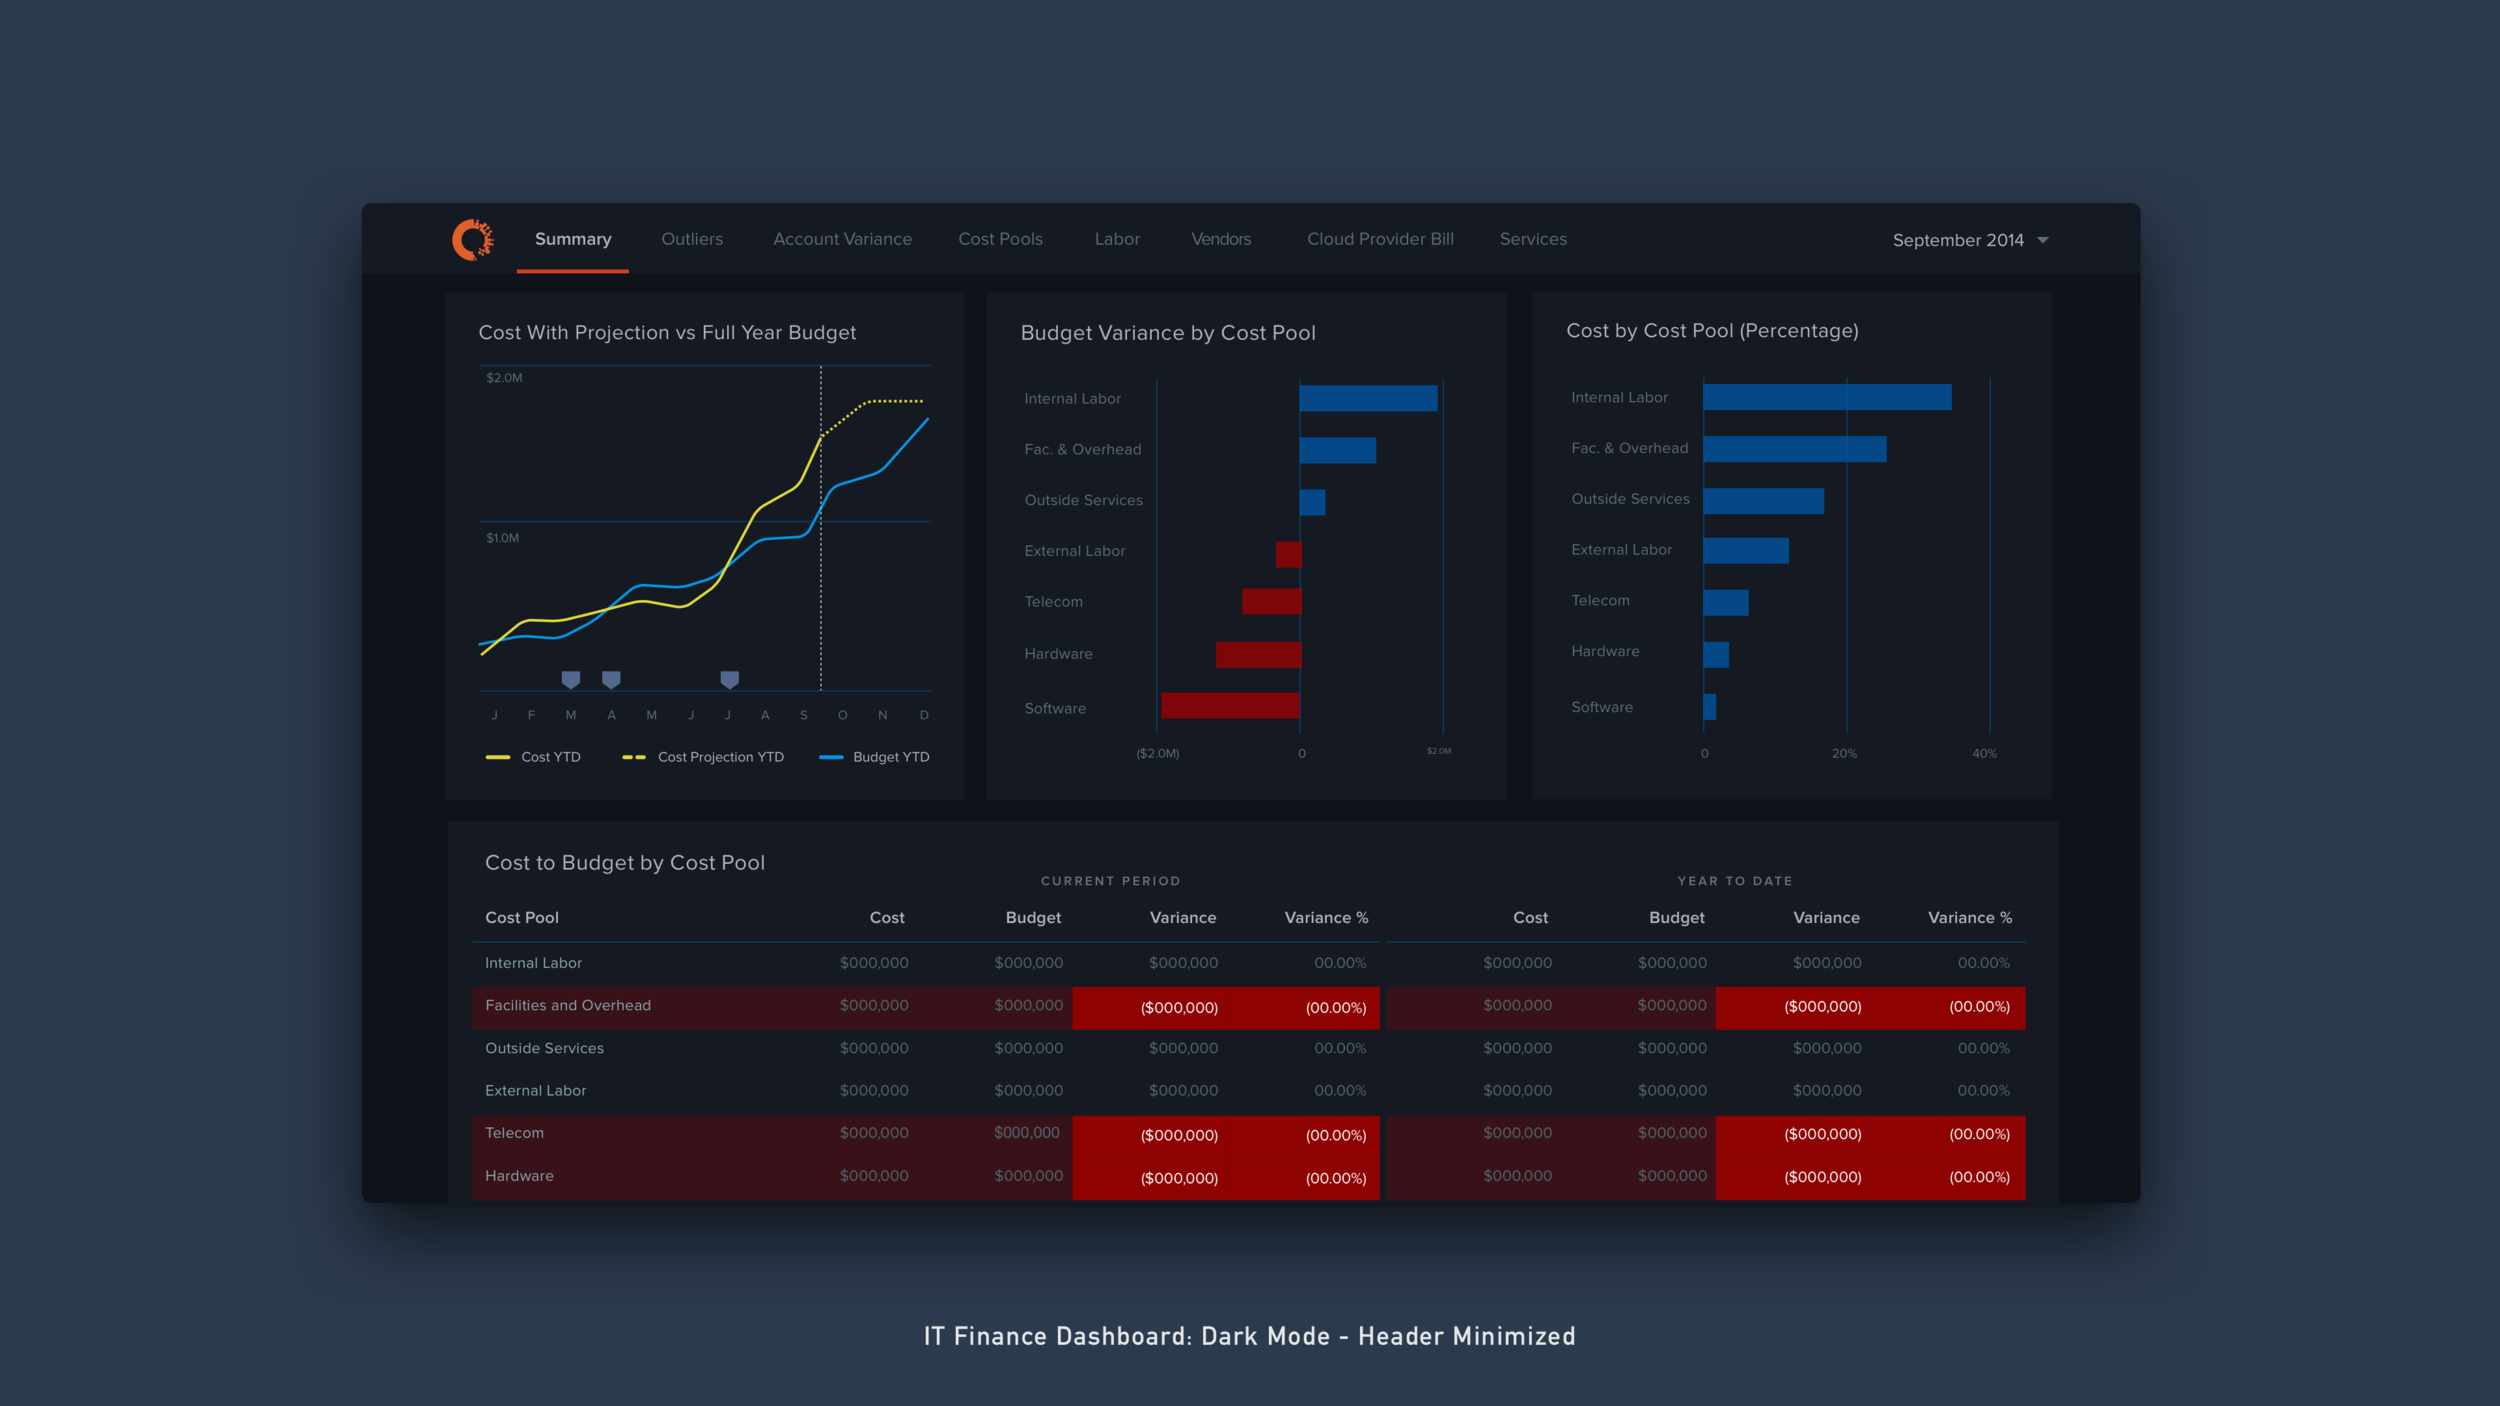 13 Dark Mode Header Minimized - Apptio Business Intelligence.png